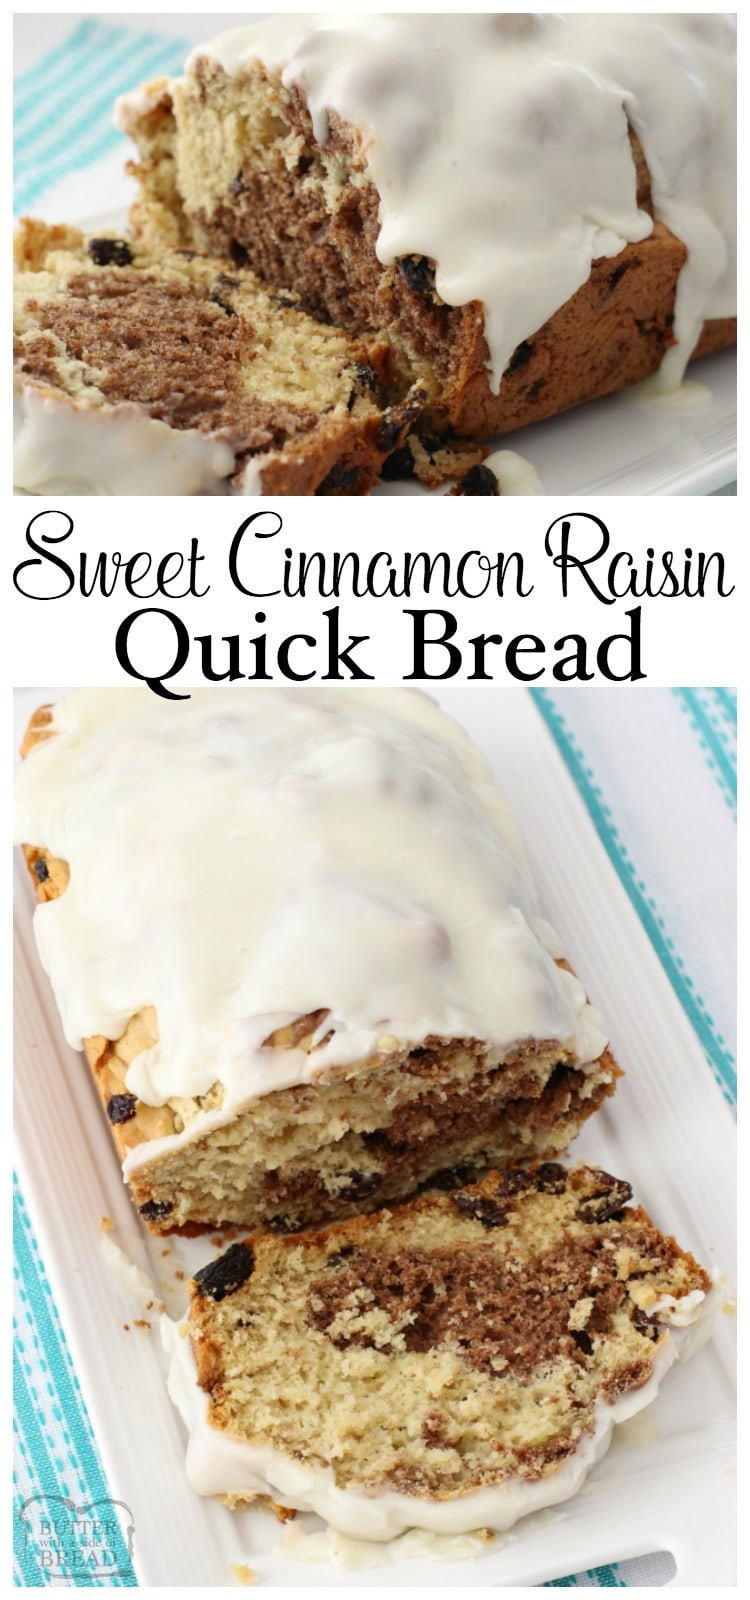 No yeast needed for this soft Sweet Cinnamon Raisin Quick Bread! Easy to make with a lovely flavor & texture, you've got to save this recipe! Butter With A Side of Bread